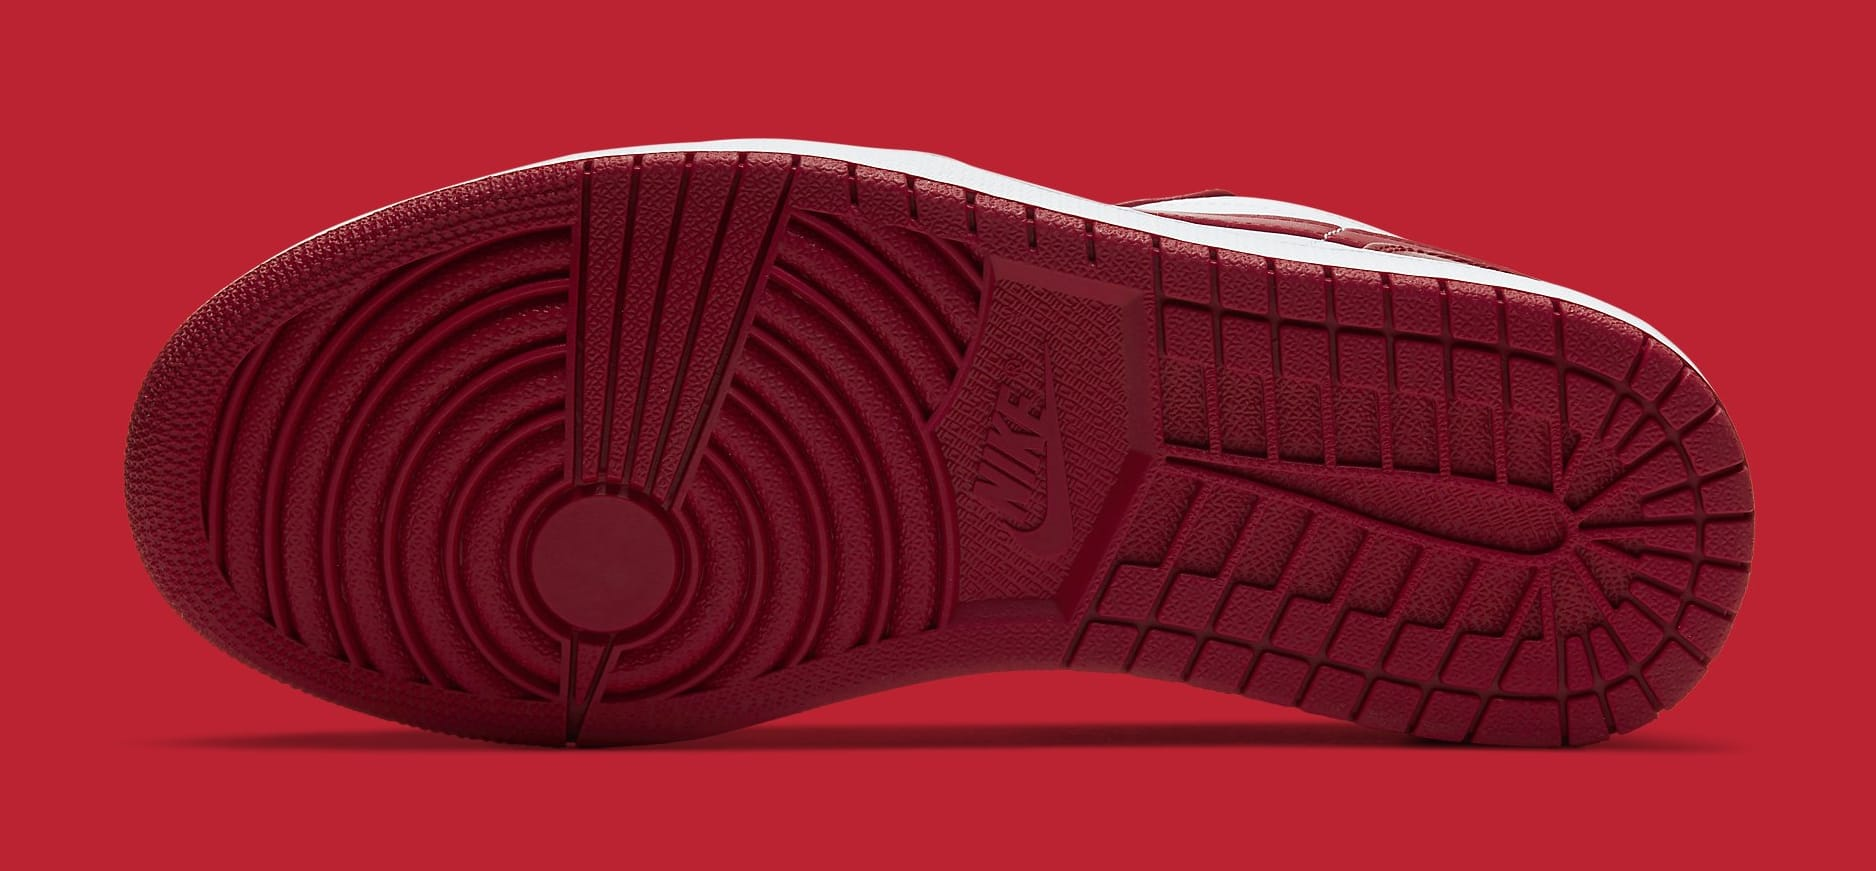 """Air Jordan 1 Low """"Gym Red"""" Coming Soon: Official Photos"""